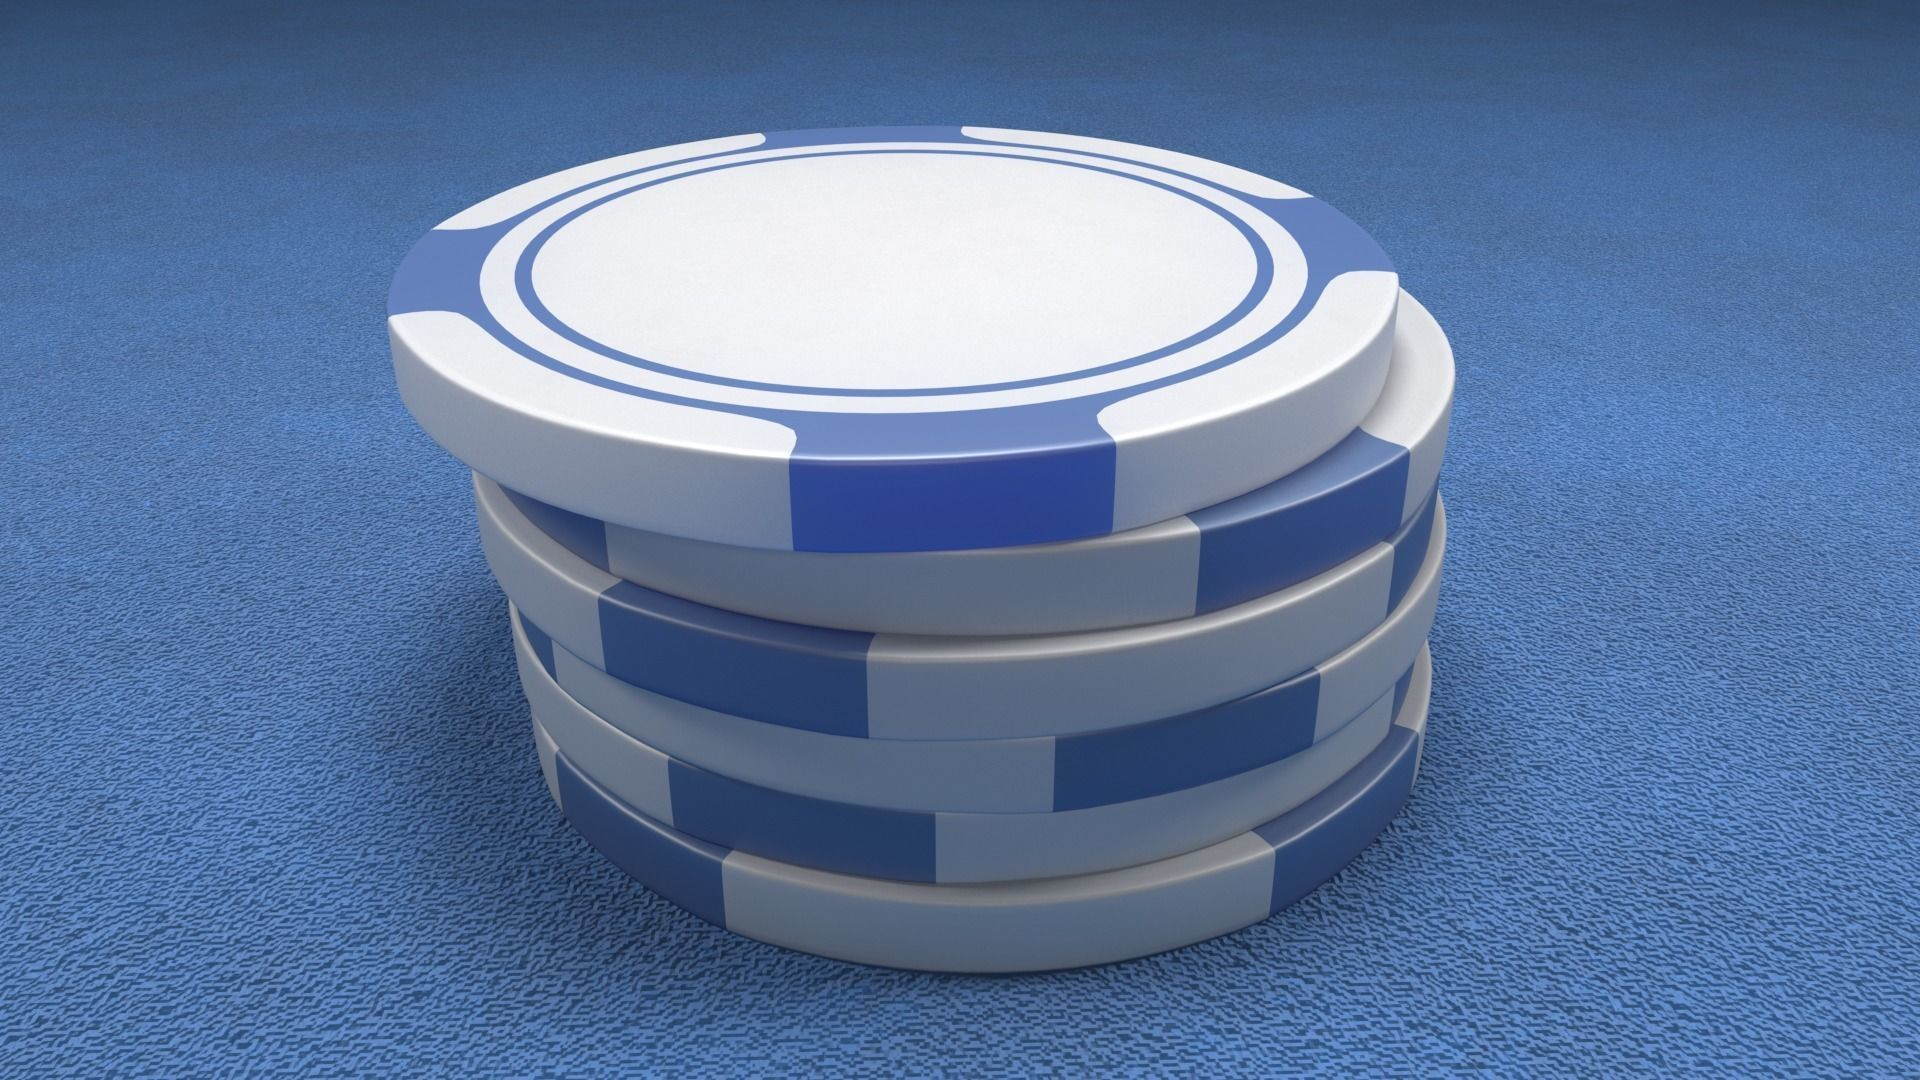 Poker Chips Blue and White